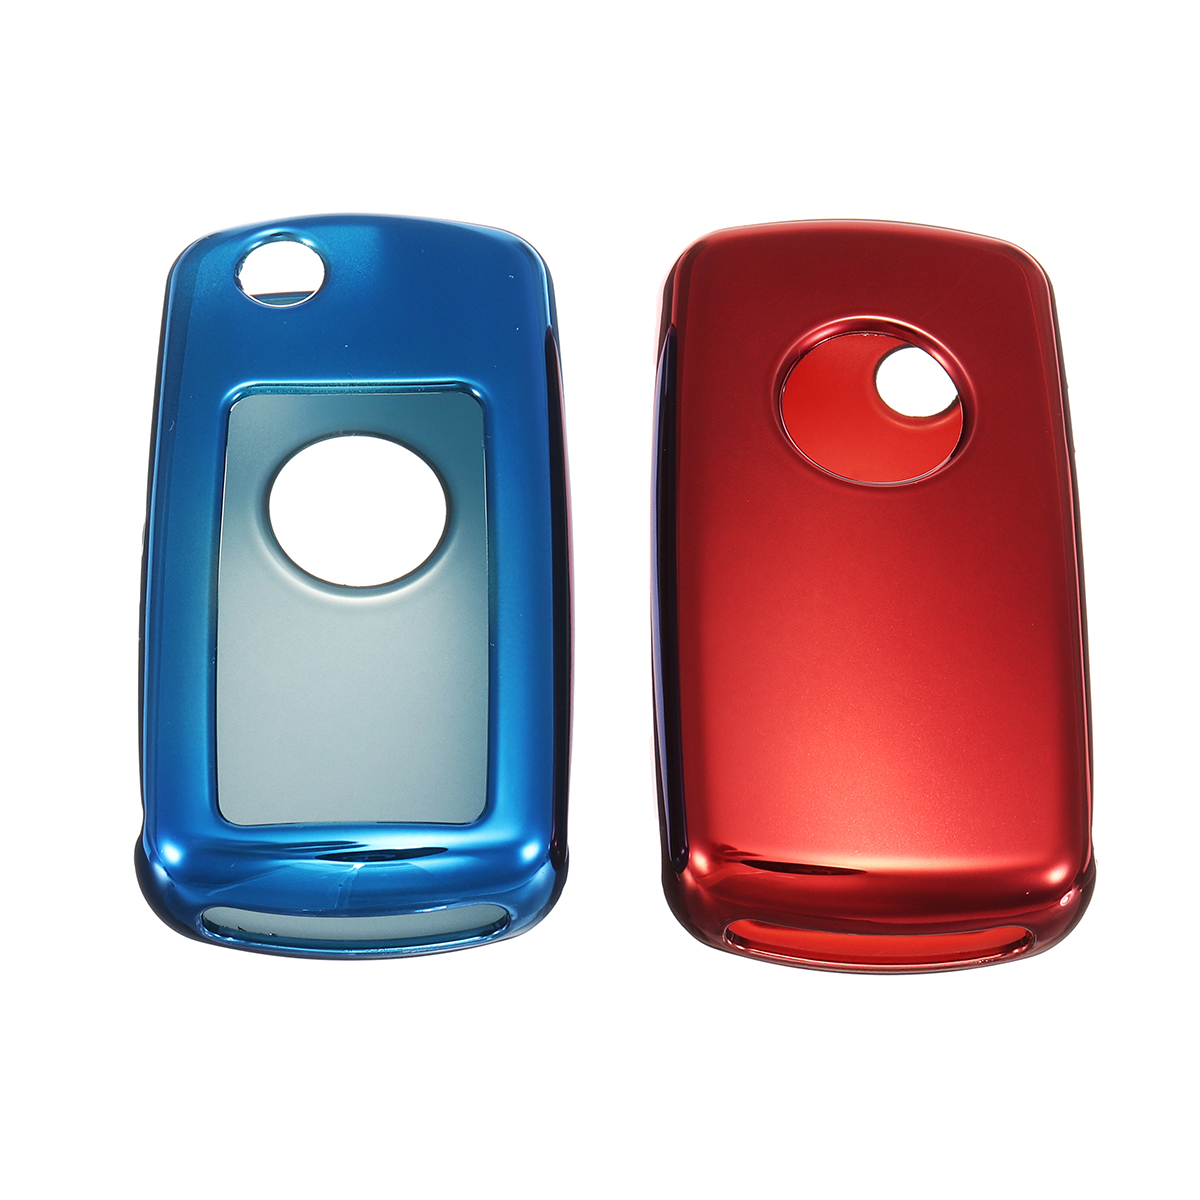 TPU Remote Smart Key Cover Fob Case Shell For VW And Other Car Models